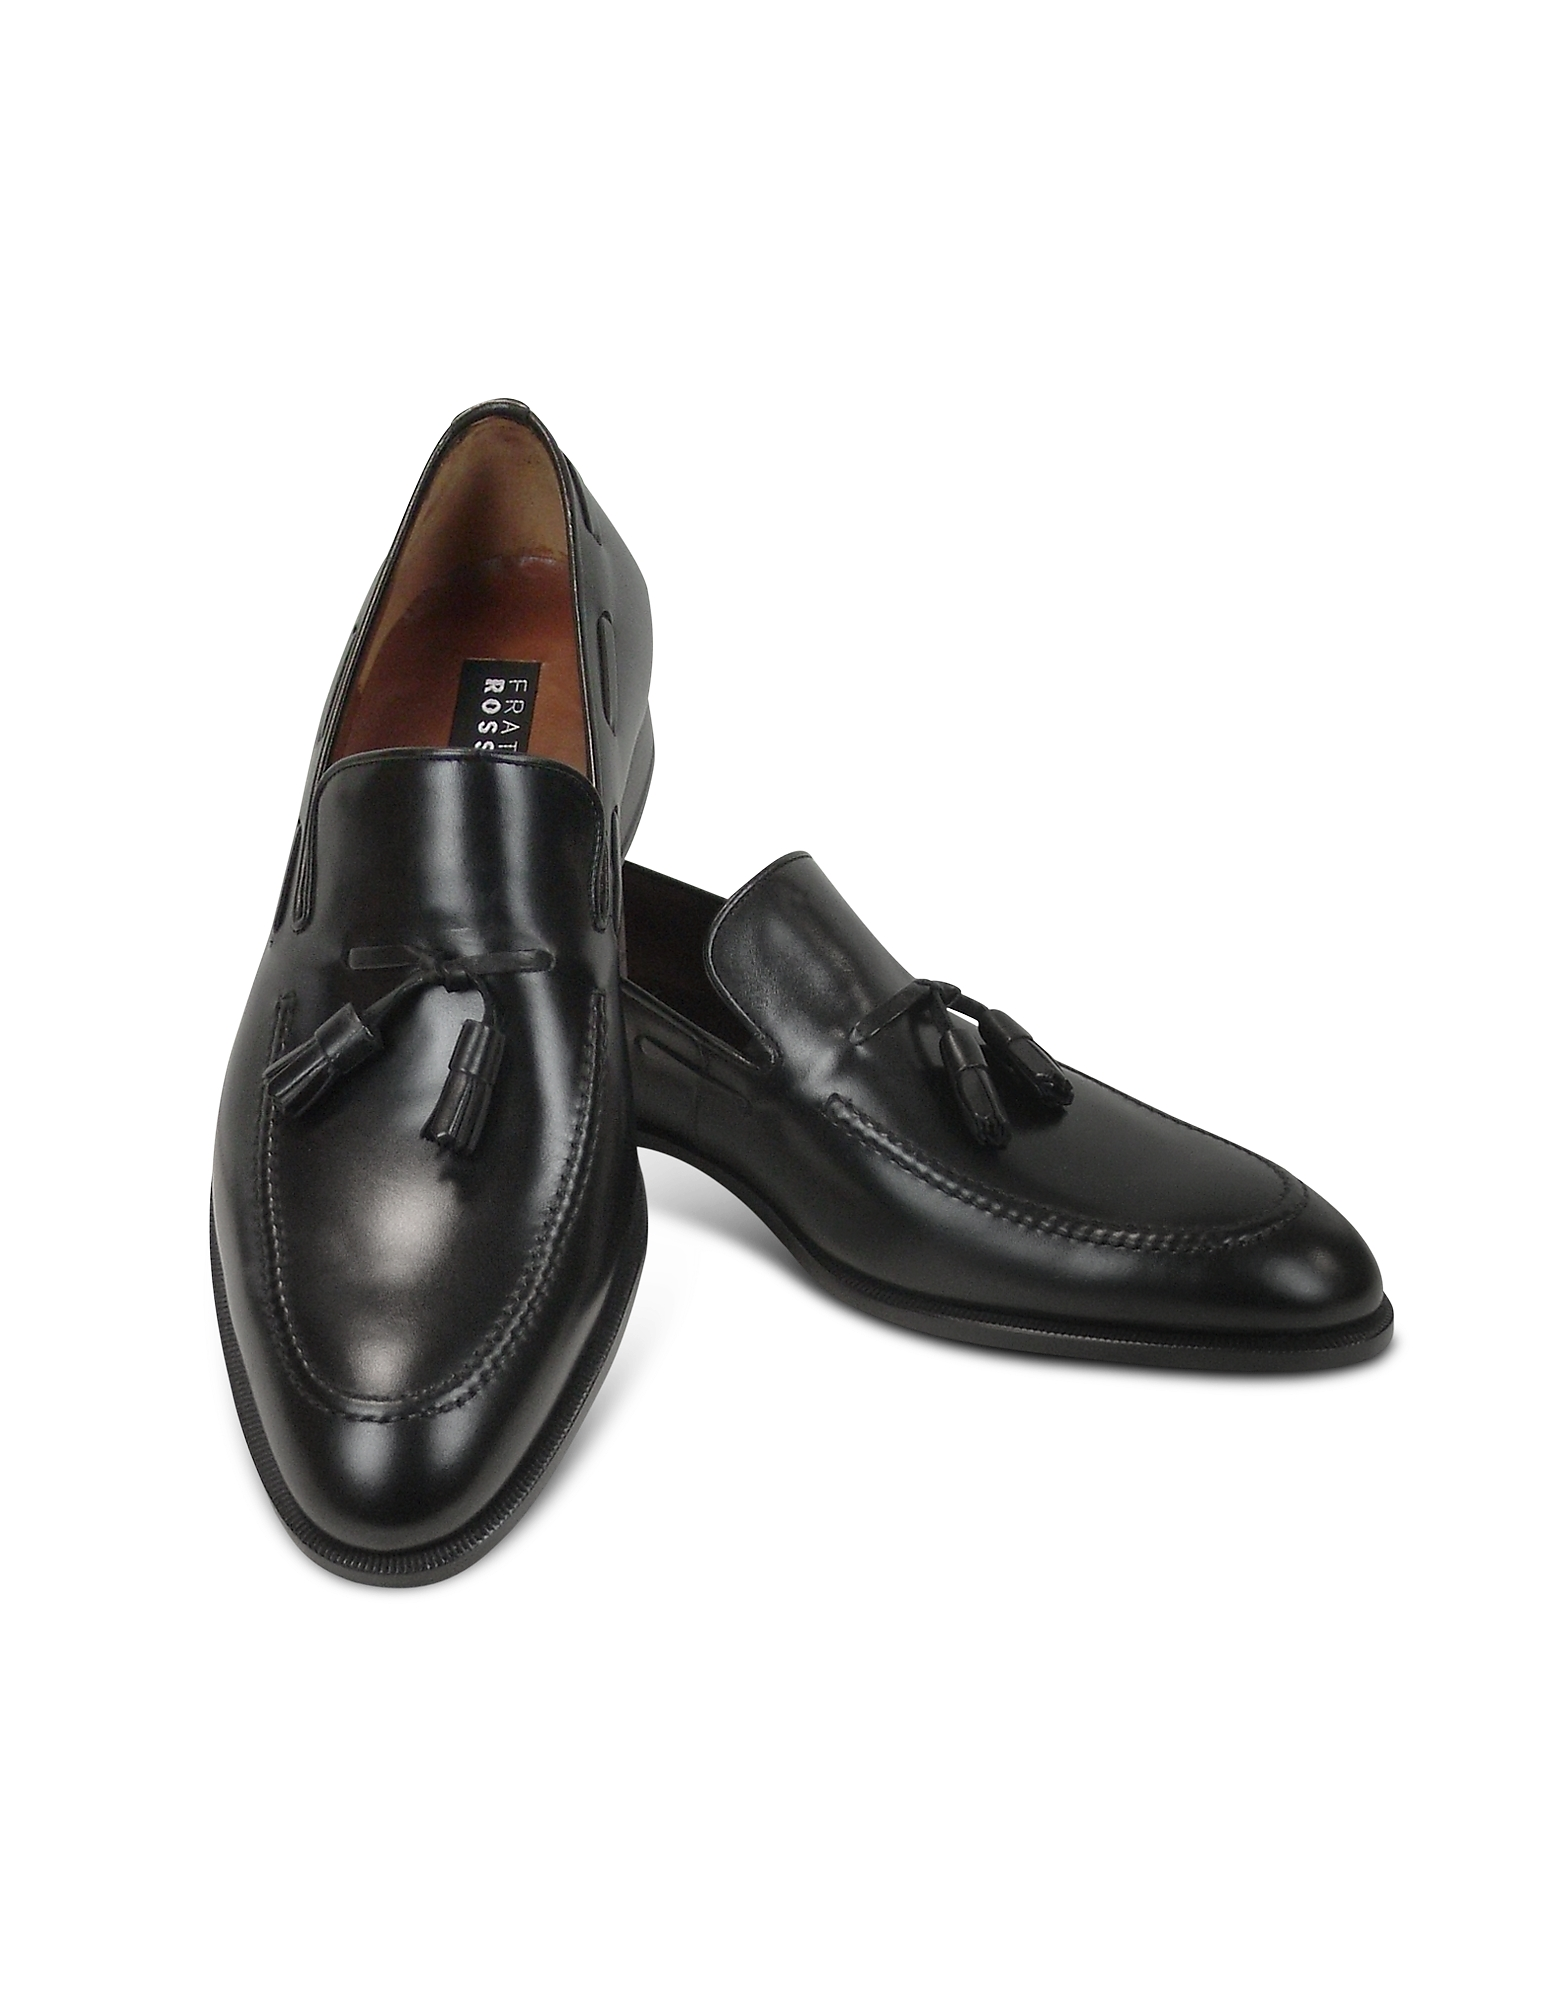 Fratelli Rossetti Shoes, Black Calf Leather Tassel Loafer Shoes